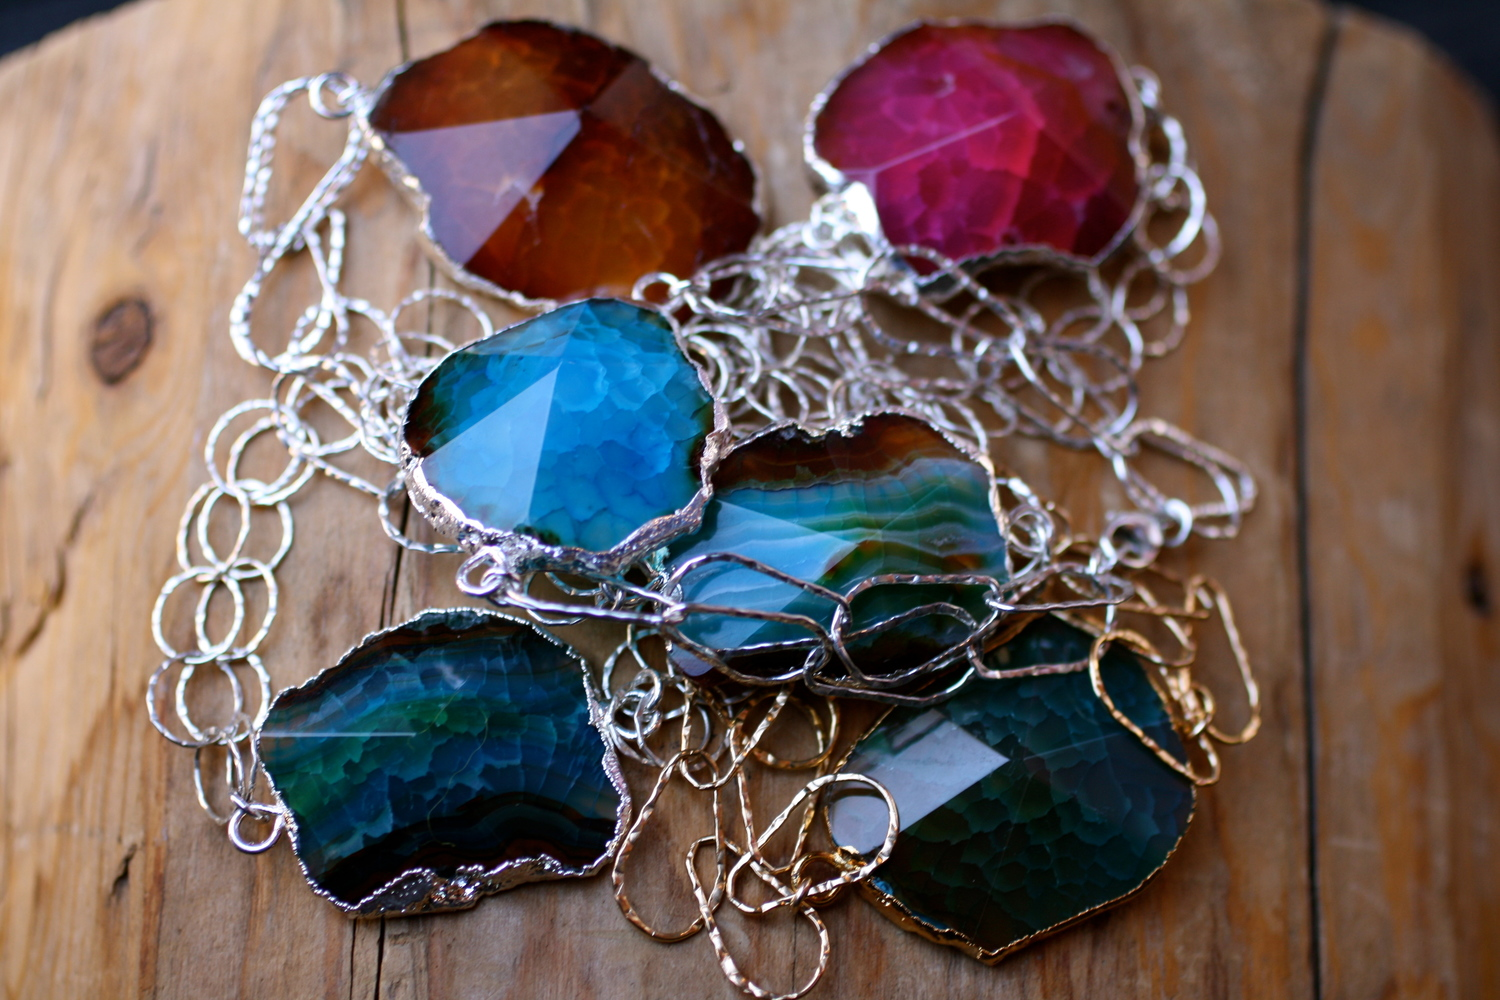 Blue+Green-Red-Orange+Agate+and+SS+GF+Chain+Bracelet_02.jpg